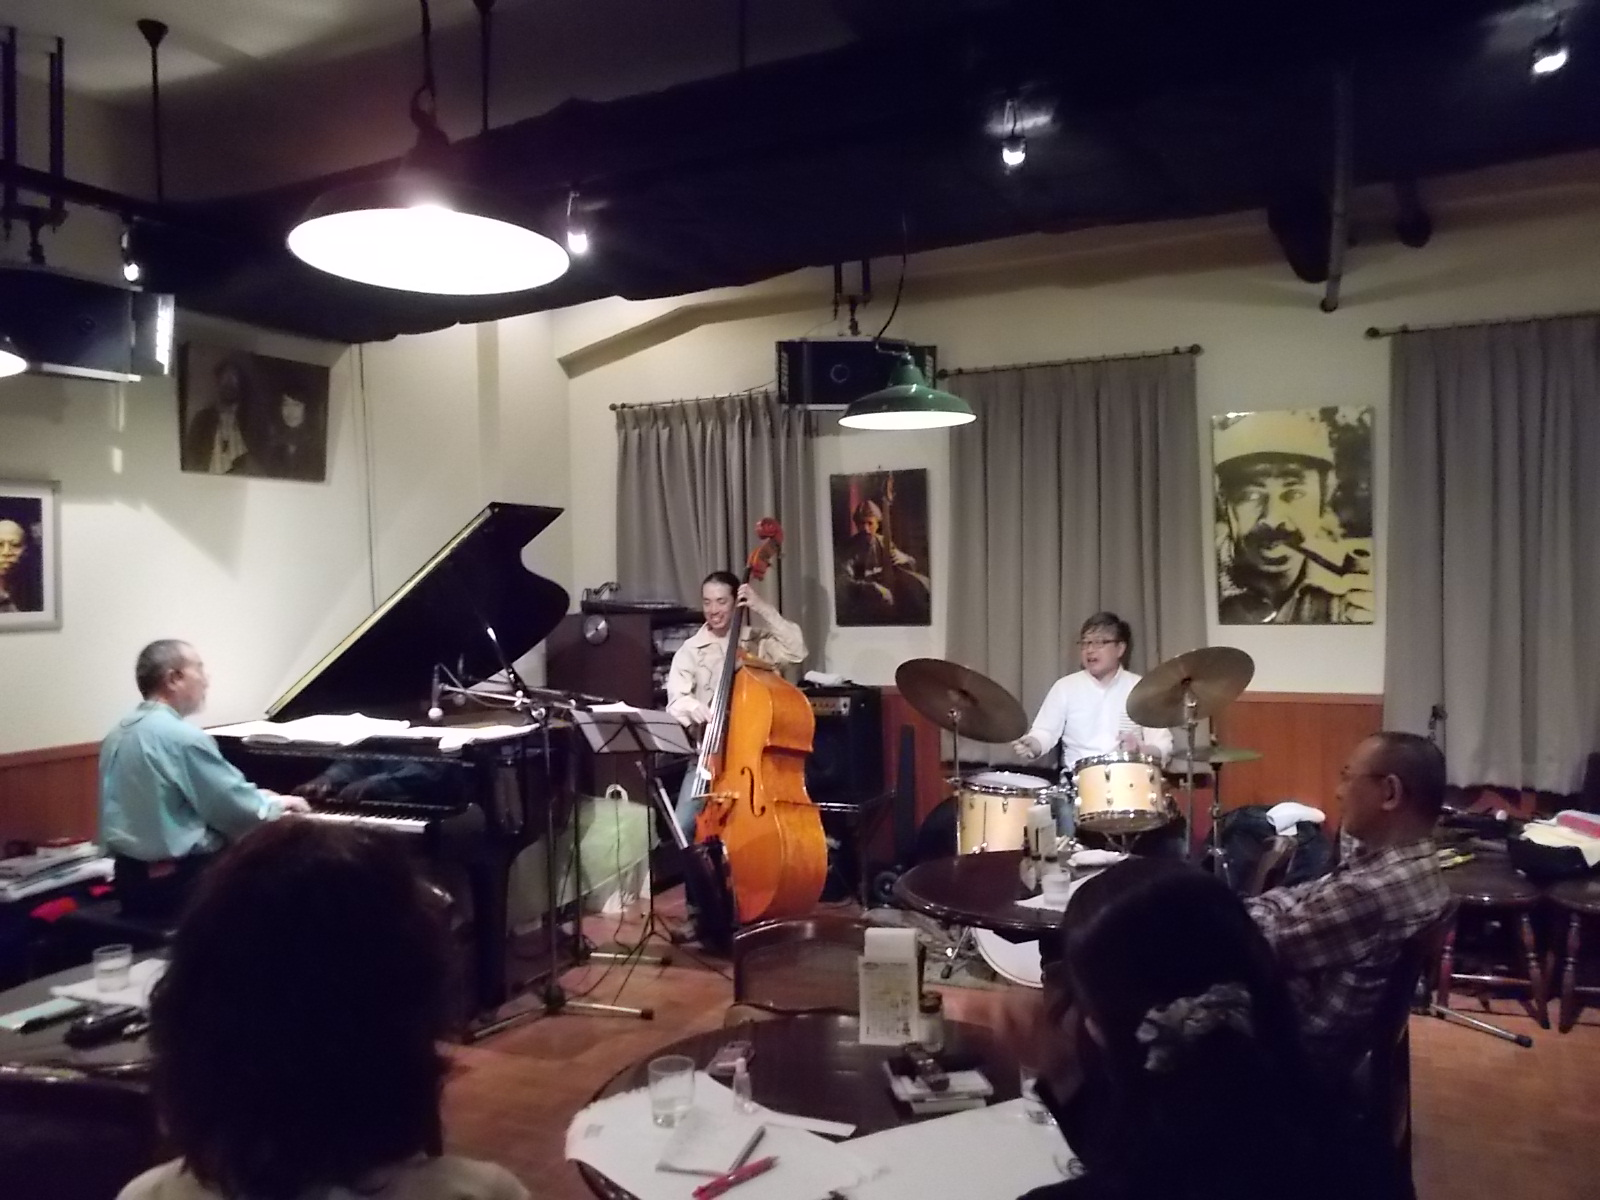 http://jazzclub-overseas.com/blog/jazz_club_overseas/mainDSCN0062.JPG